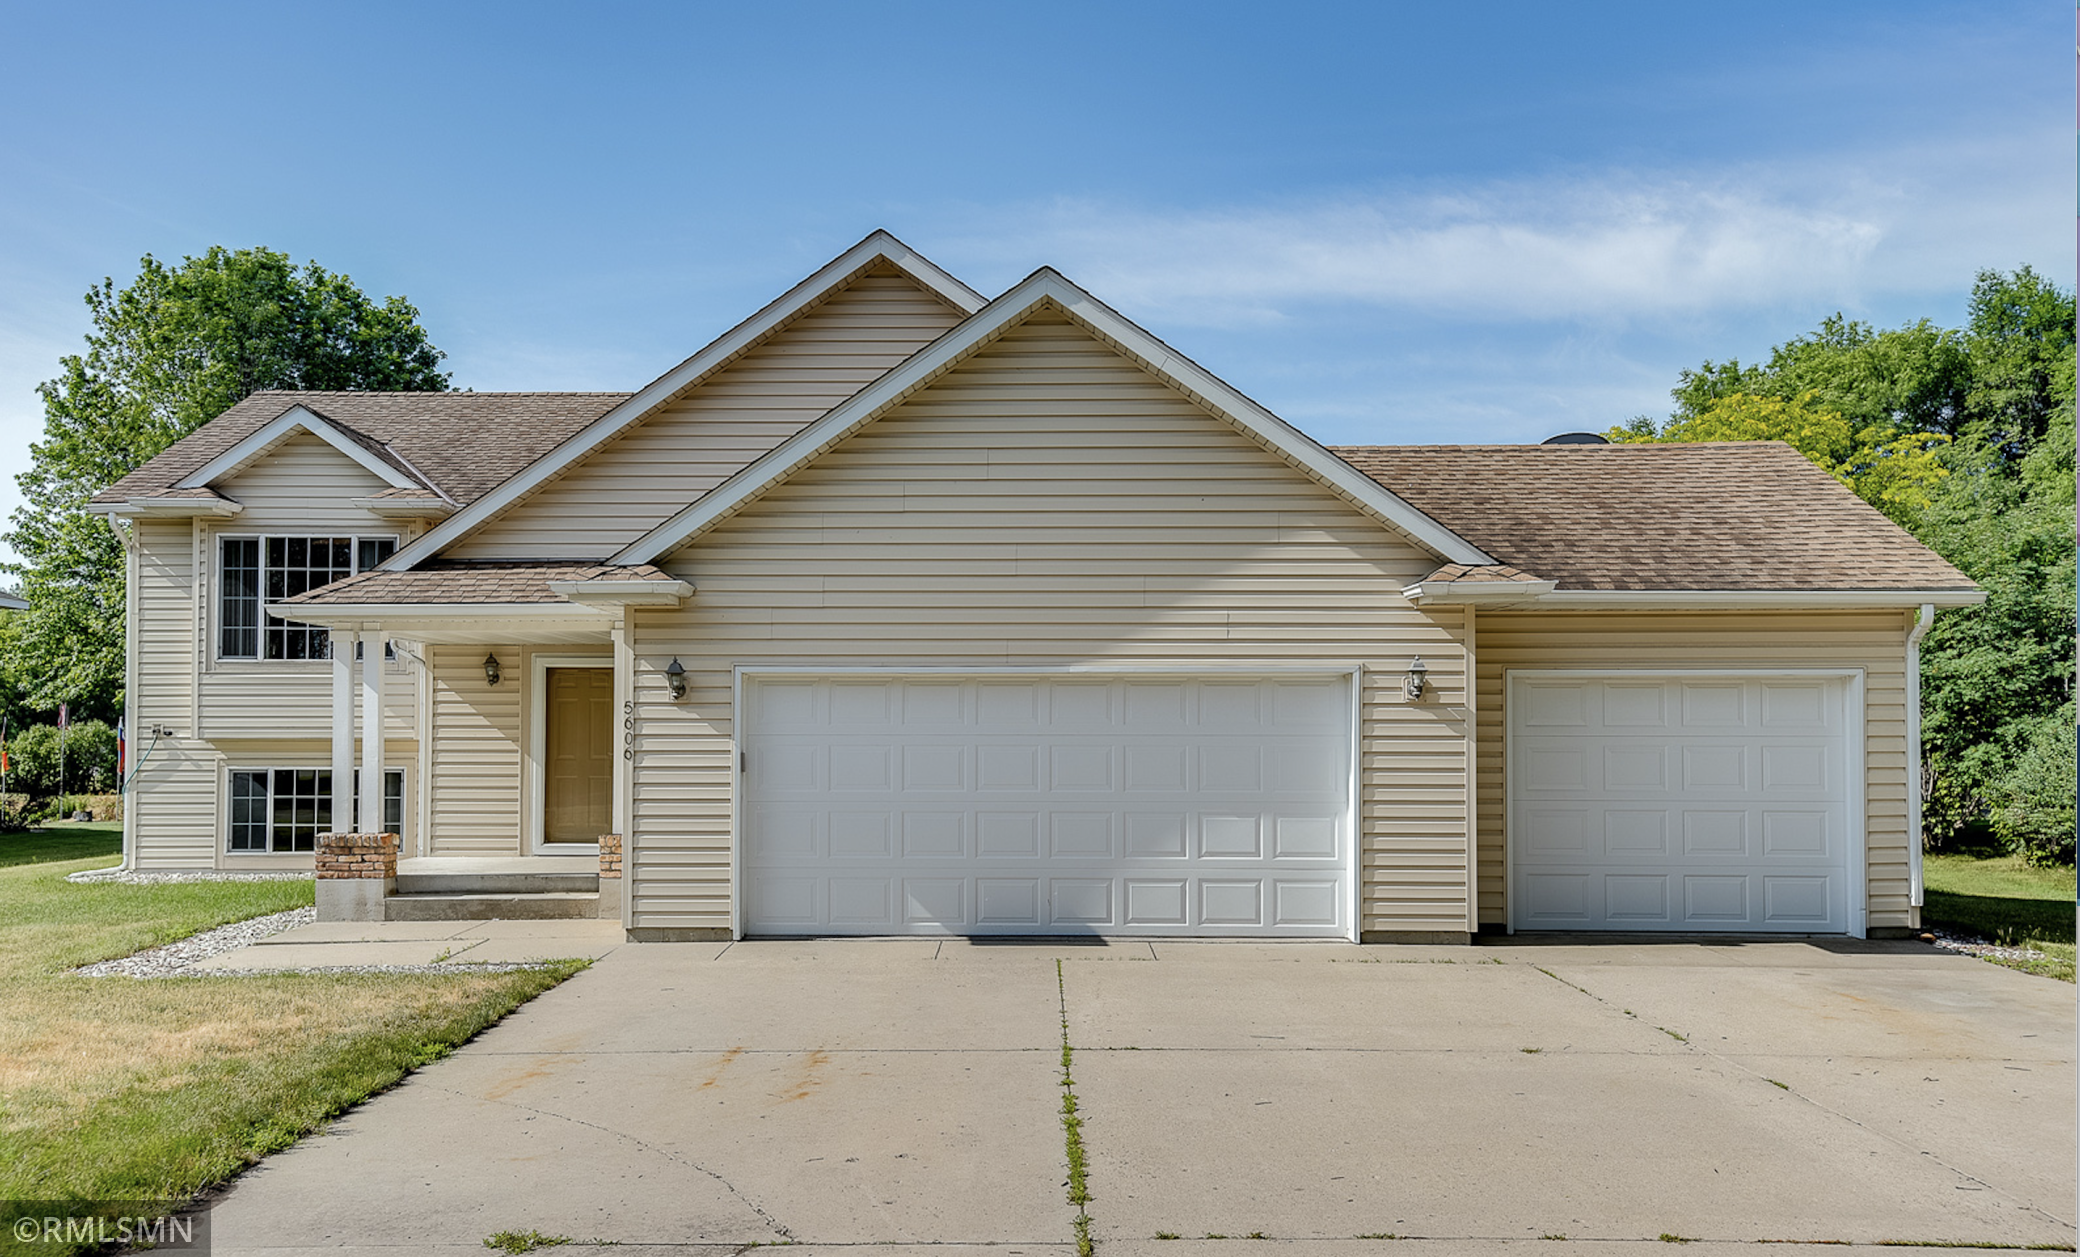 Welcome Home to this one owner beautifully maintained home. Situated on an oversized lot. Move in ready, close to dining, shopping, parks and more! This home is a MUST SEE!